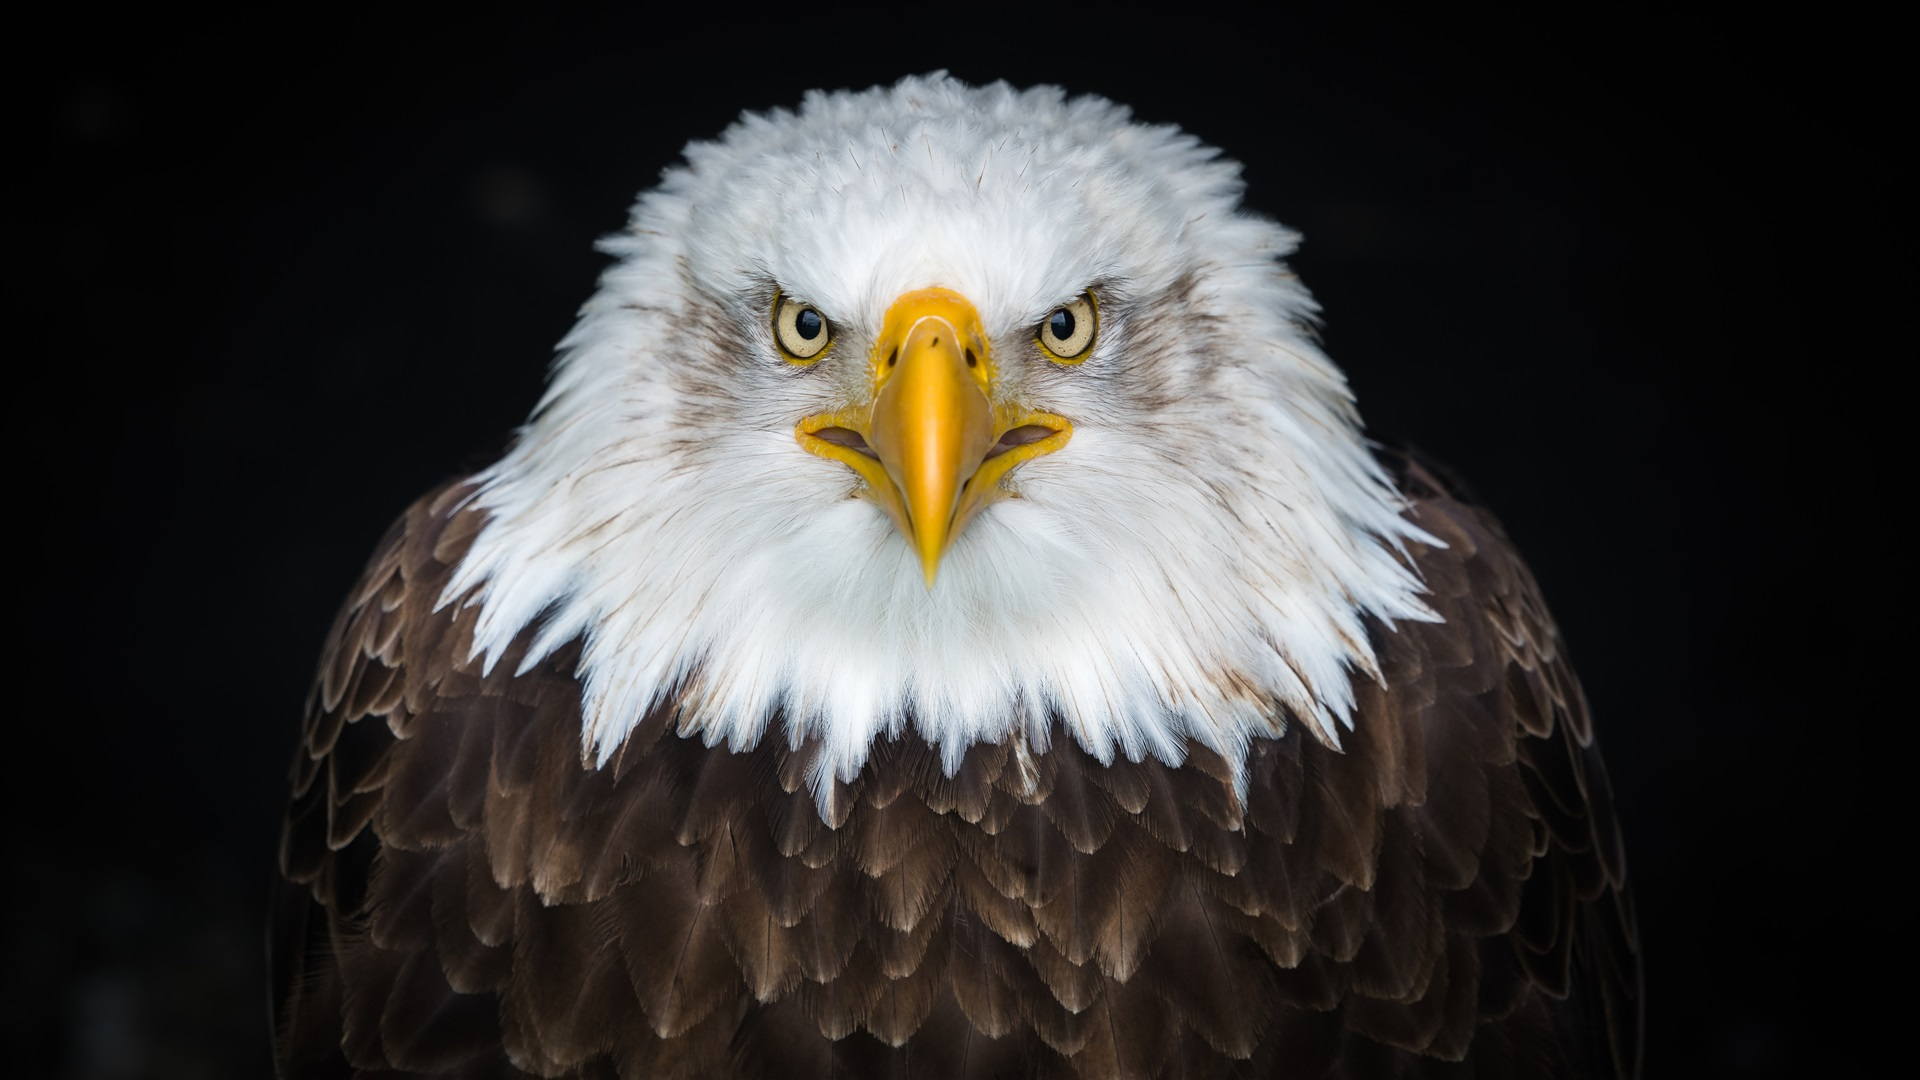 Wallpaper Bald Eagle Front View Beak Eyes 3840x2160 Uhd